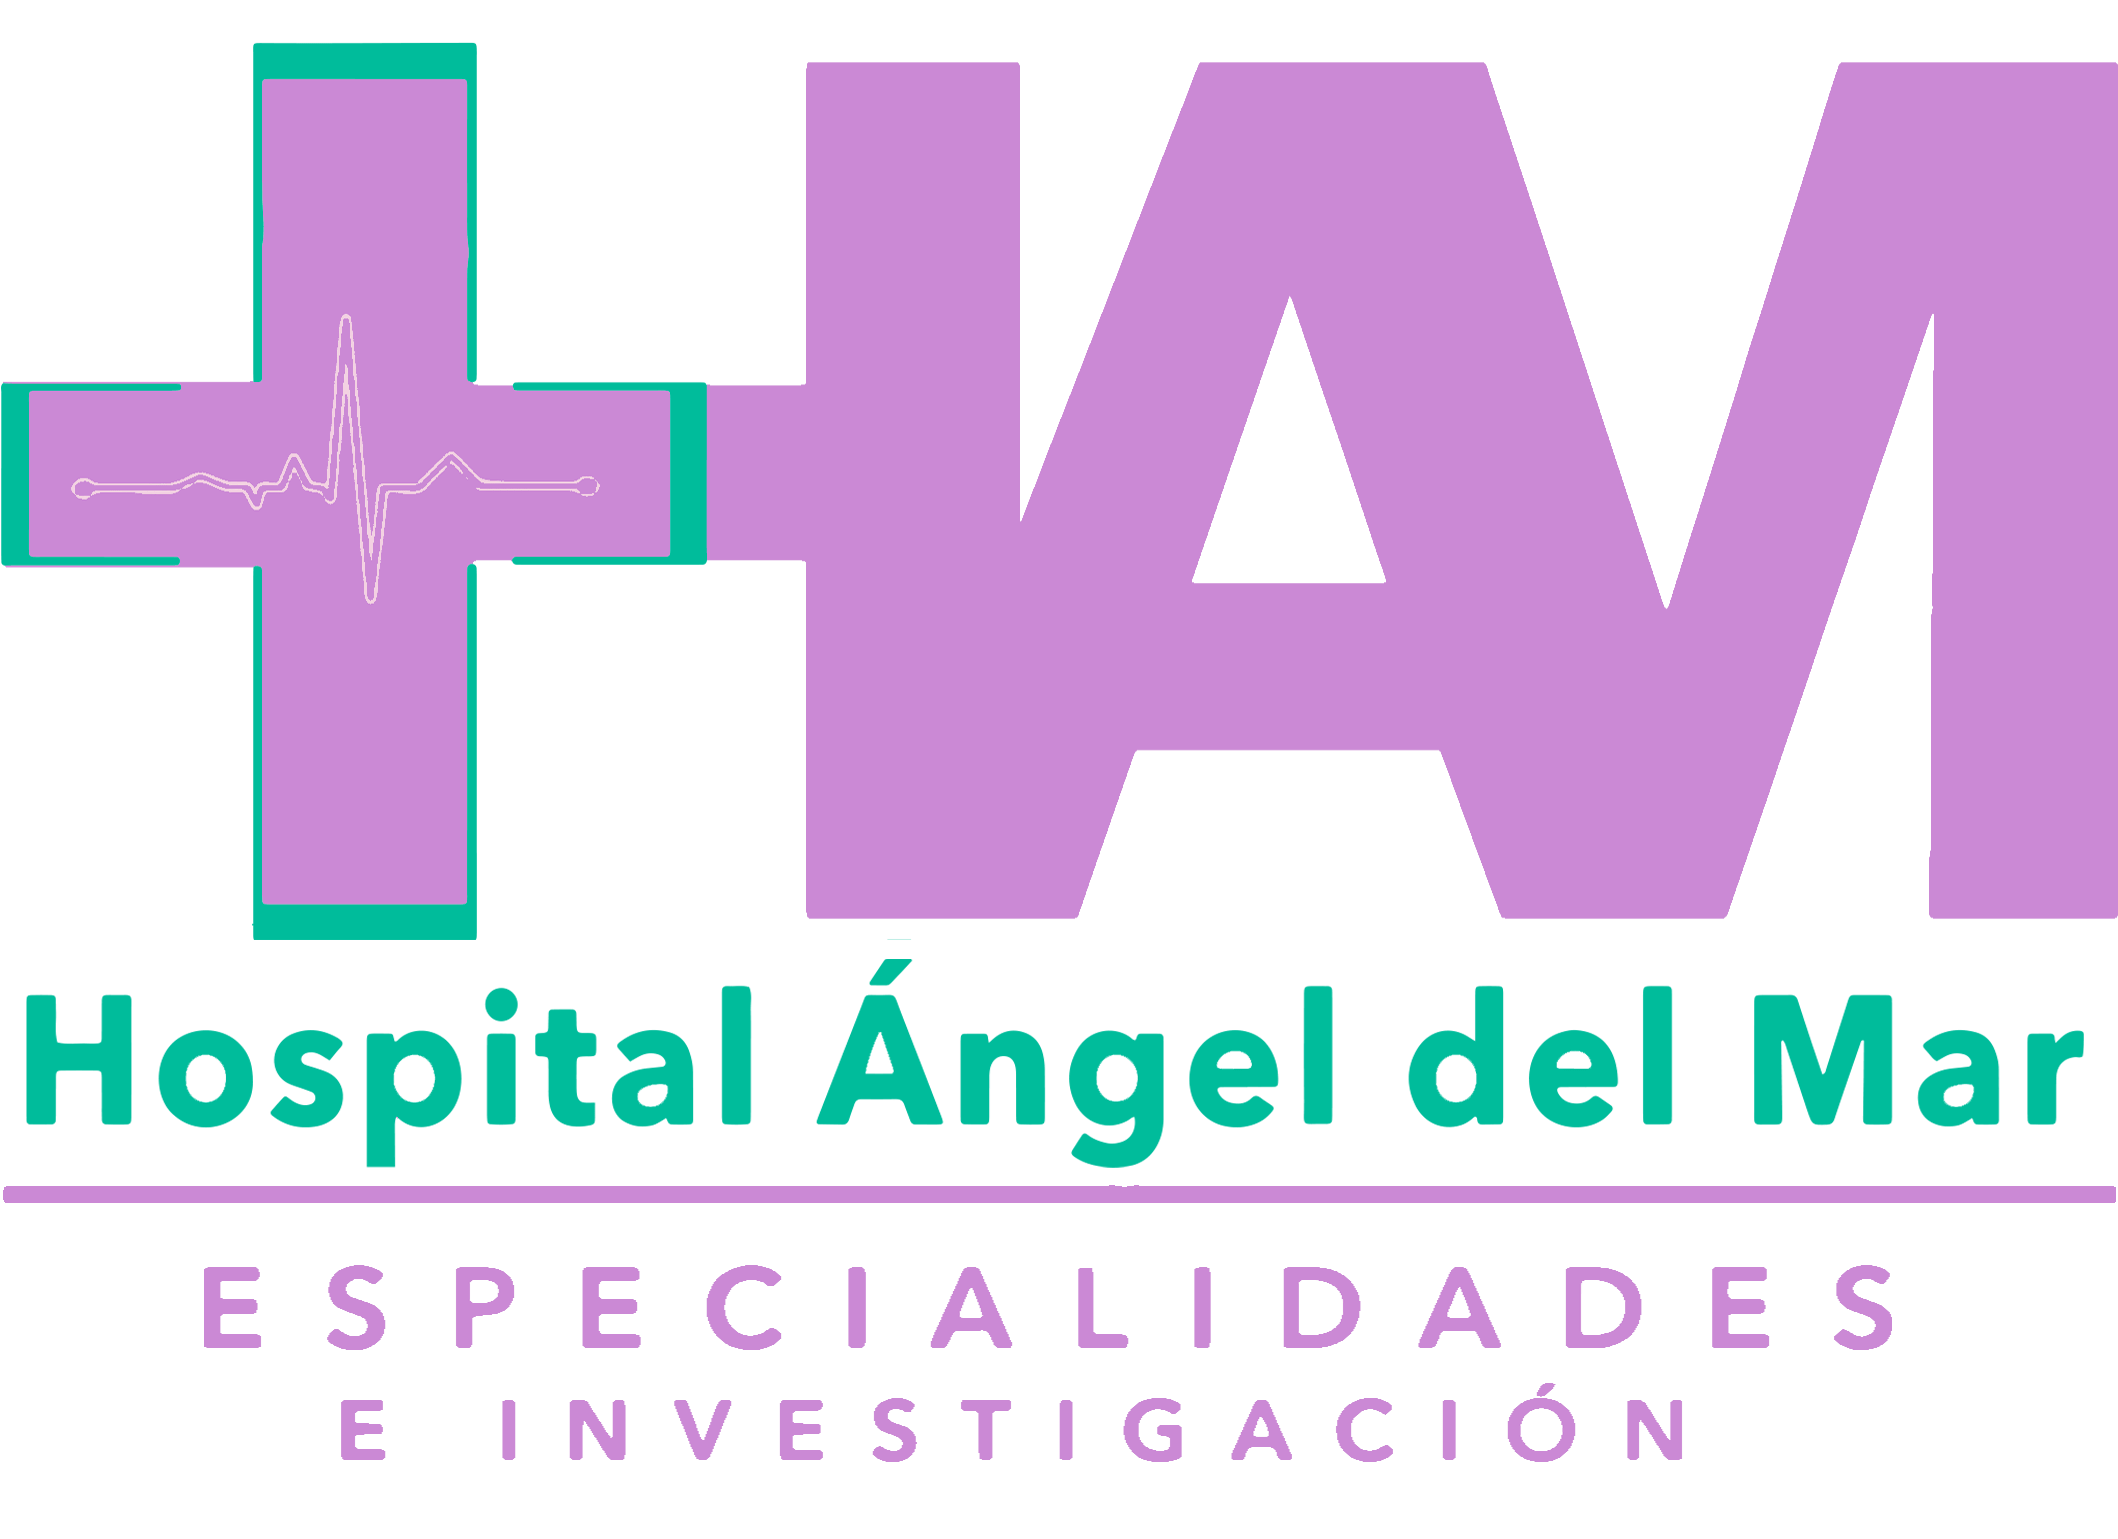 Logotipo Hospital Ángel del Mar Puerto Escondido Oaxaca